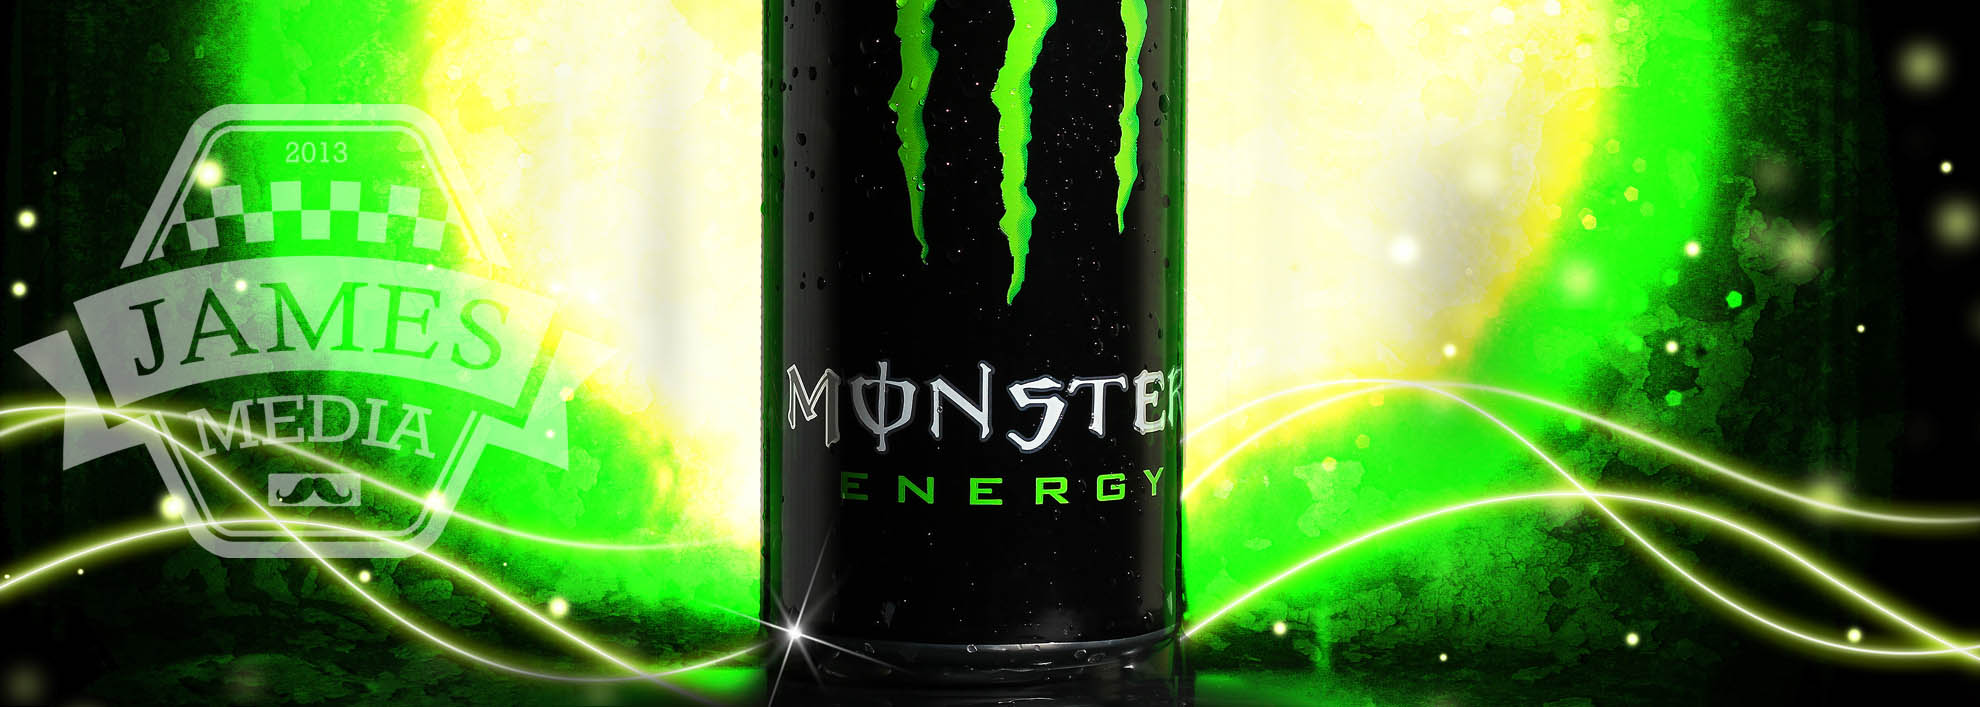 Monster Energy - James Media